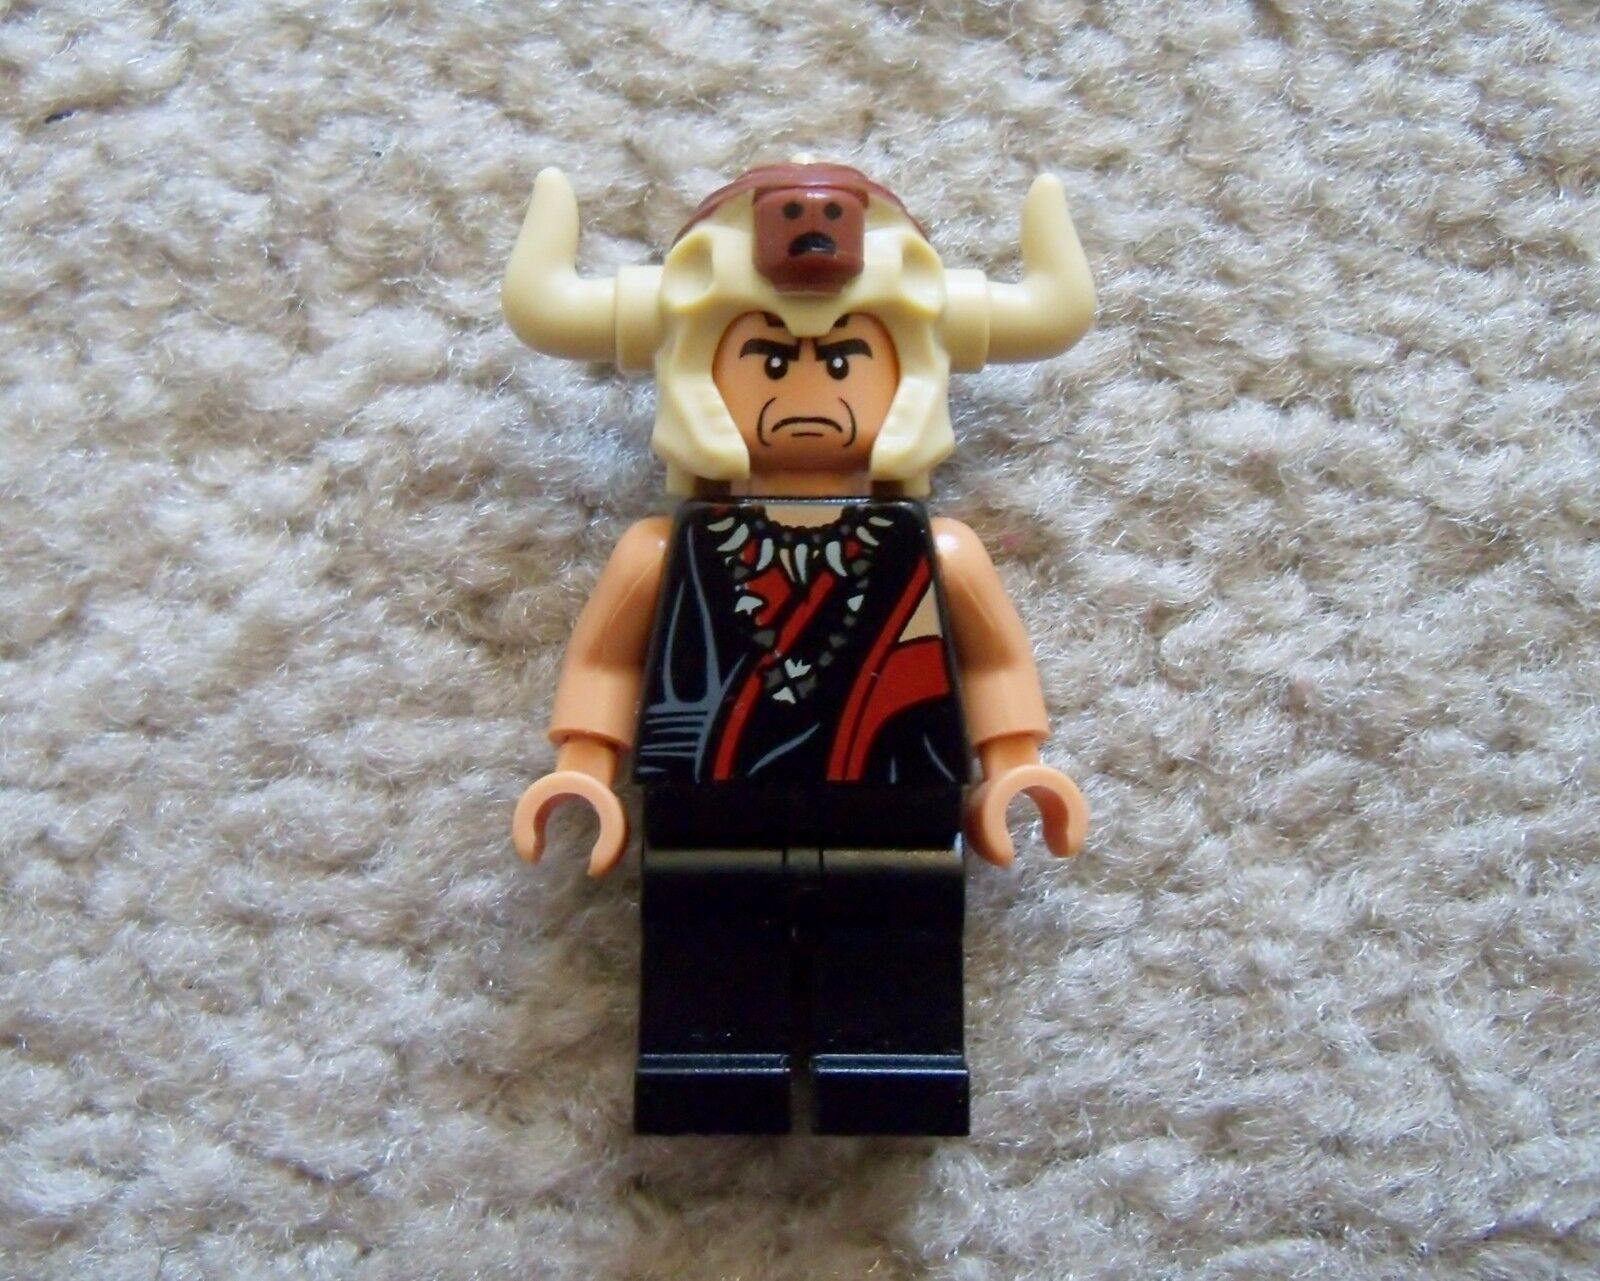 LEGO Indiana Jones - Rare - Mola Ram Minifig - Excellent - From 7199